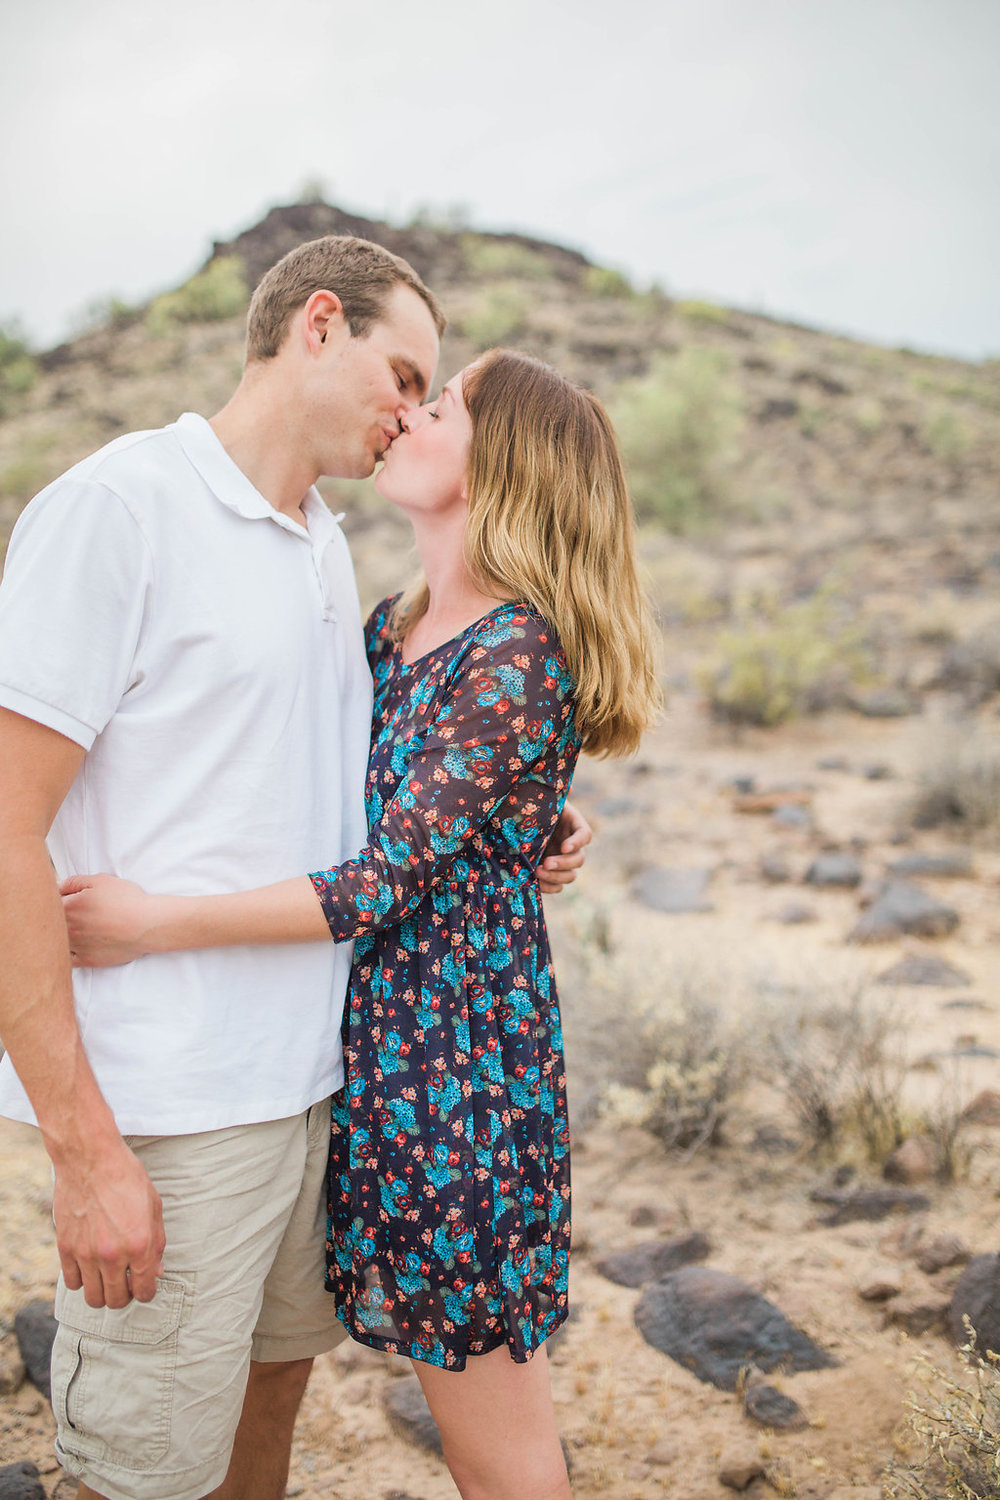 Desert Family Photo Shoot in Arizona | Emma Rose Company | Portrait Photographer | Seattle Wedding Photographer | Adorable Family Photo Shoot Outside | Family Posing | Cute Kids with Dad | Family Photo Shoot | Husband and Wife Pictures | What to Wear for pictures | Kiss shot